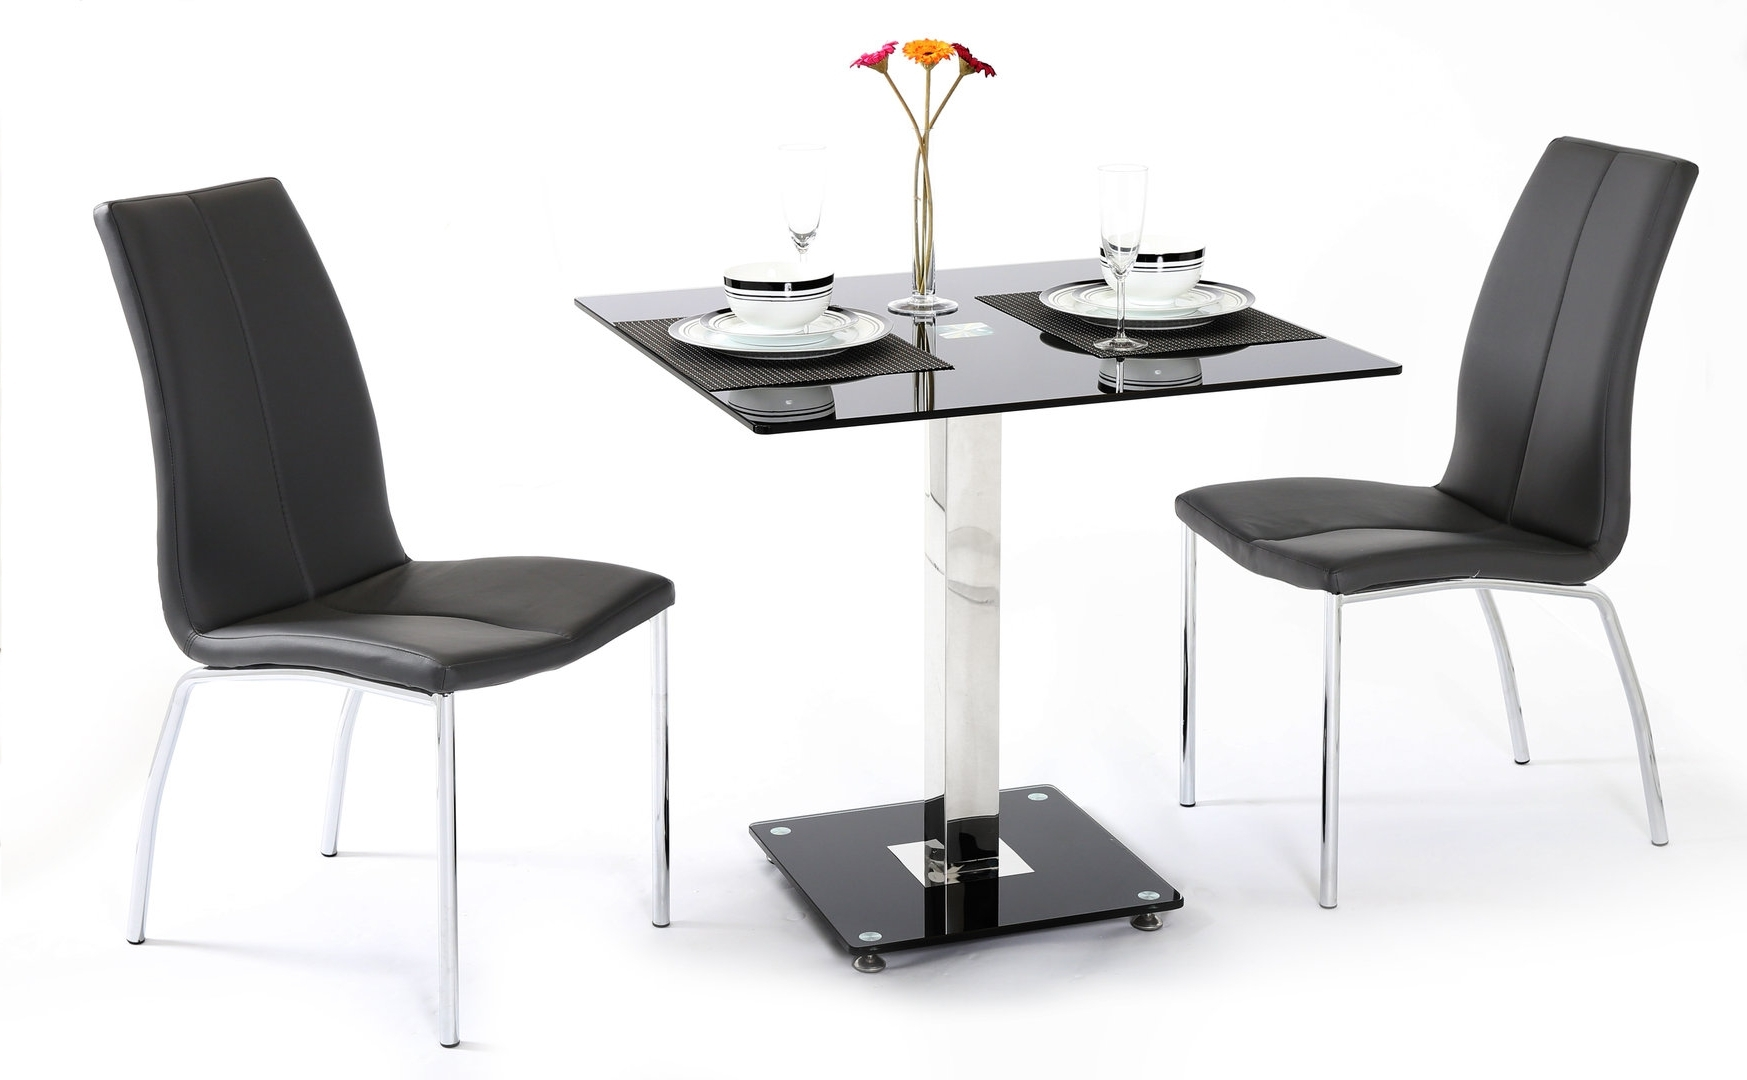 Well Known Black Glass Dining Table And 2 Chairs – Homegenies With Regard To Square Black Glass Dining Tables (View 2 of 25)